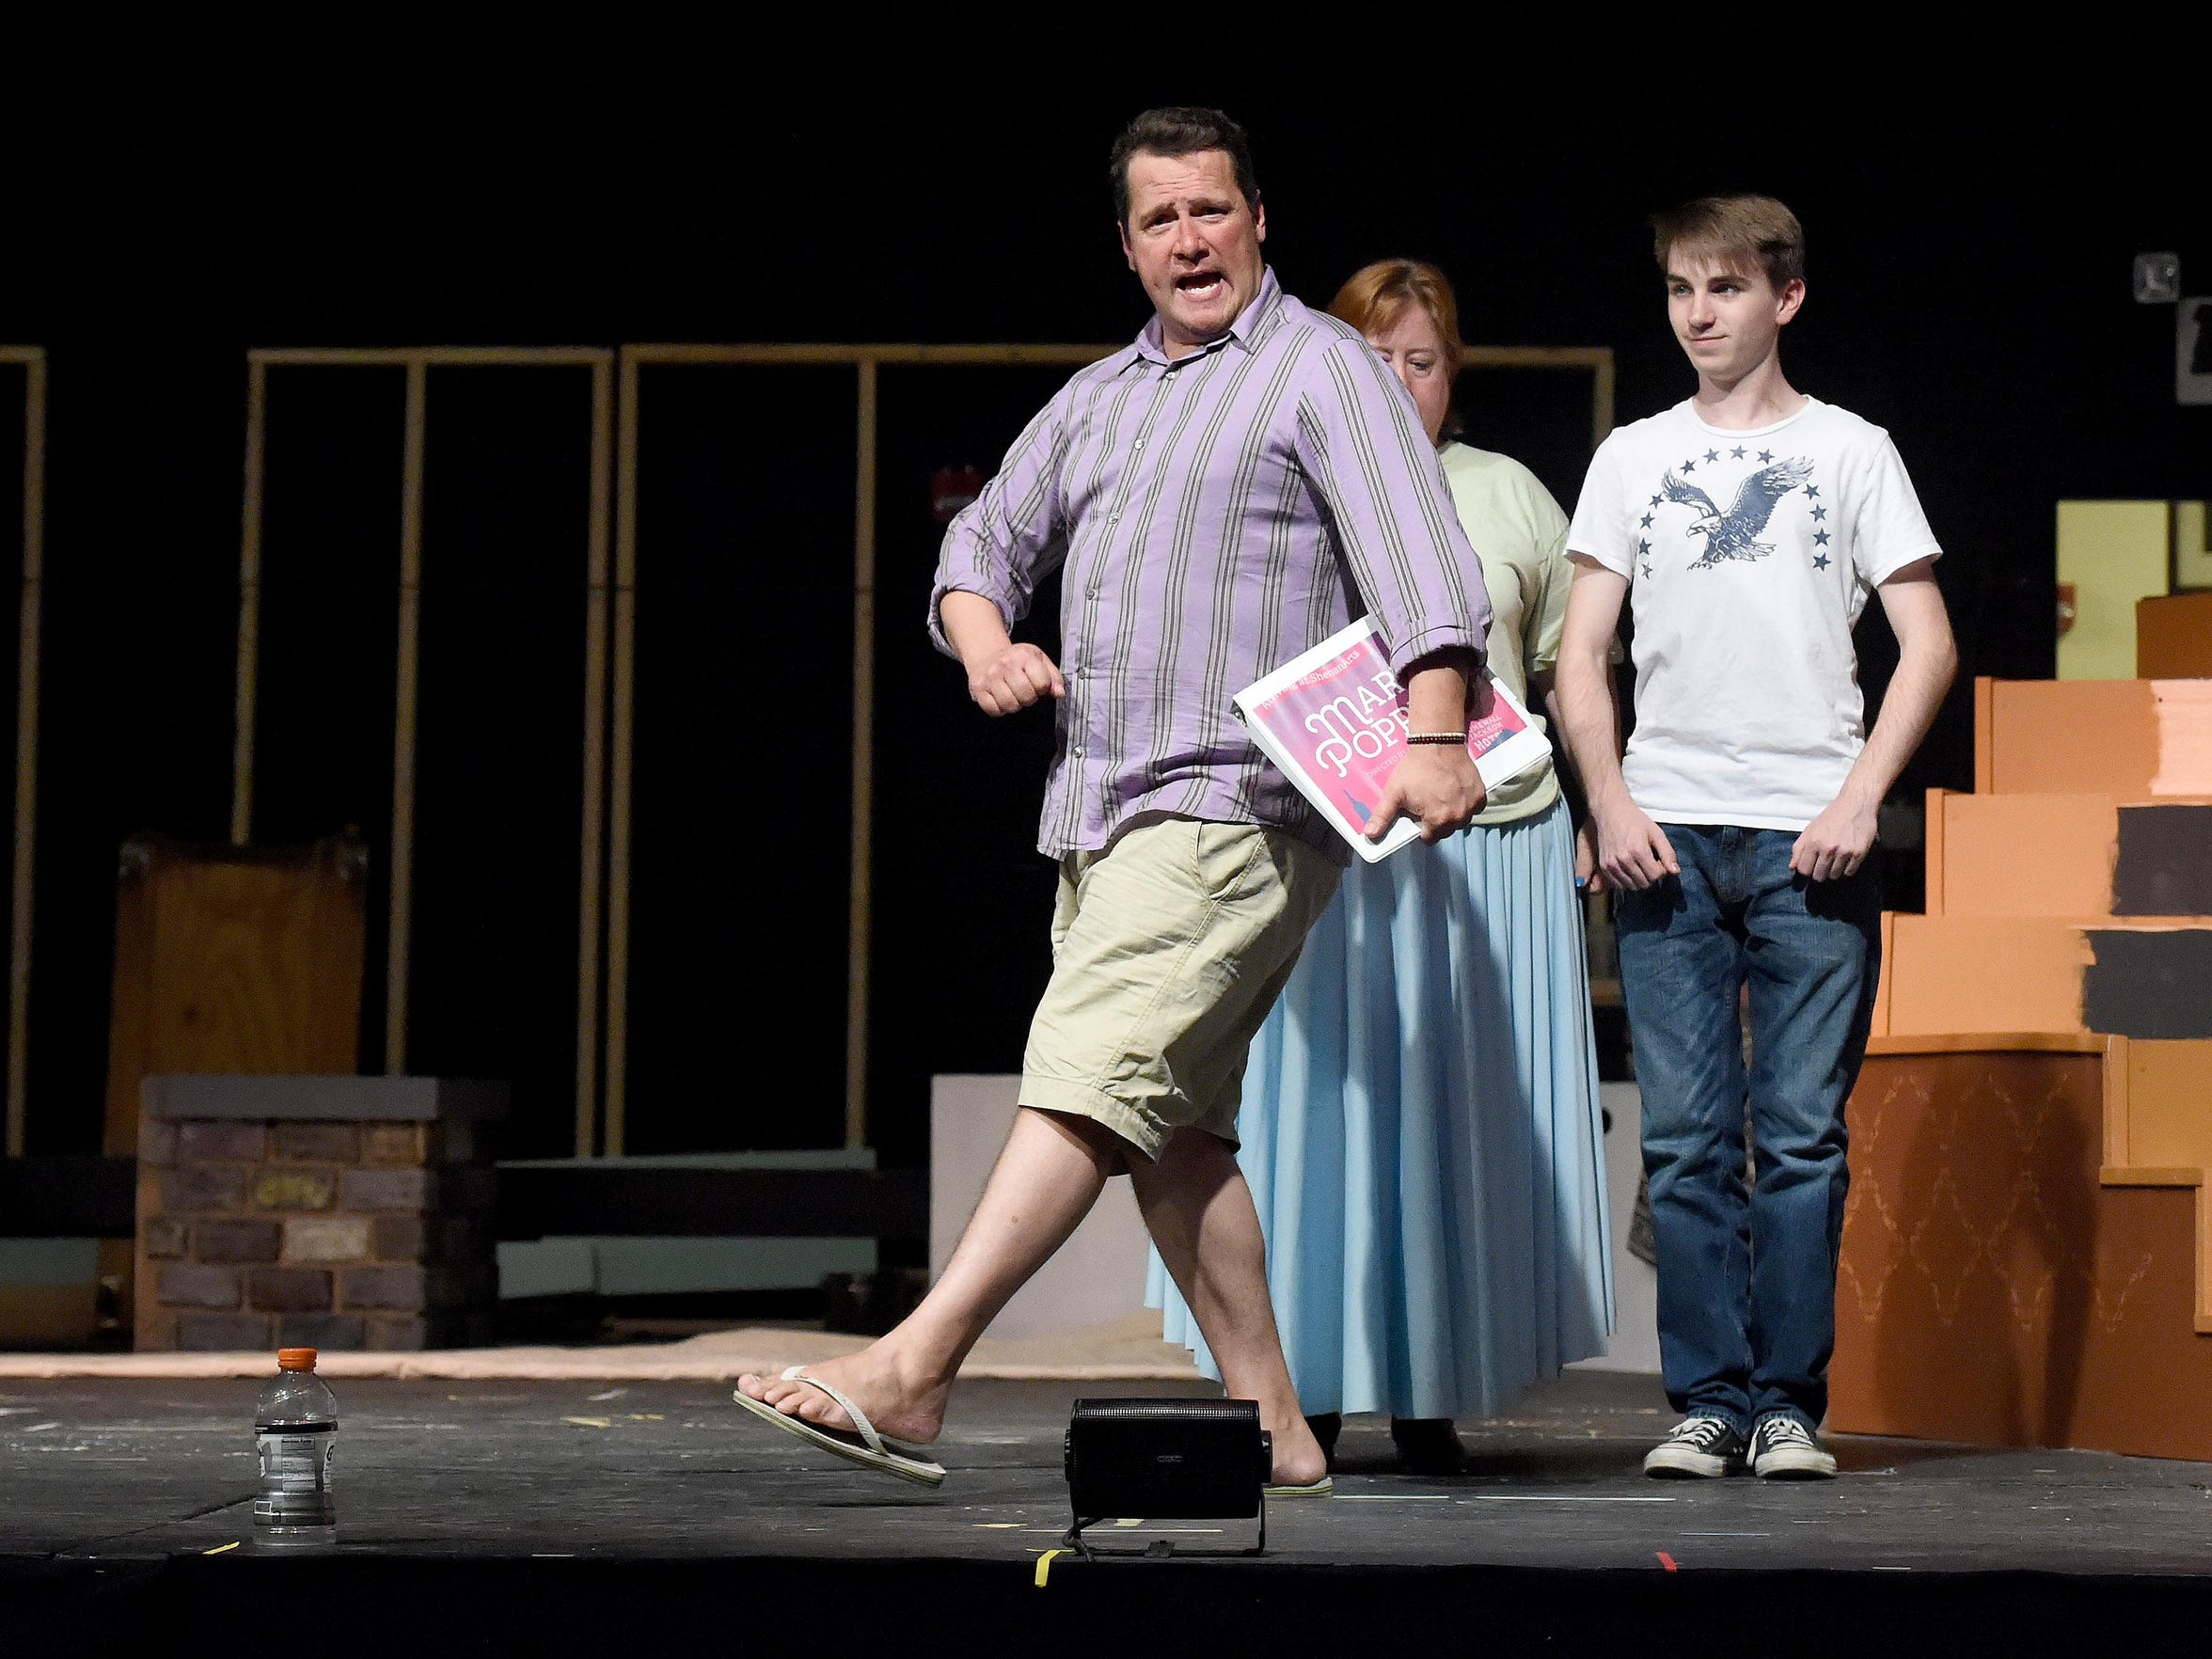 Director Hank Fitzgerald struts across the stage as